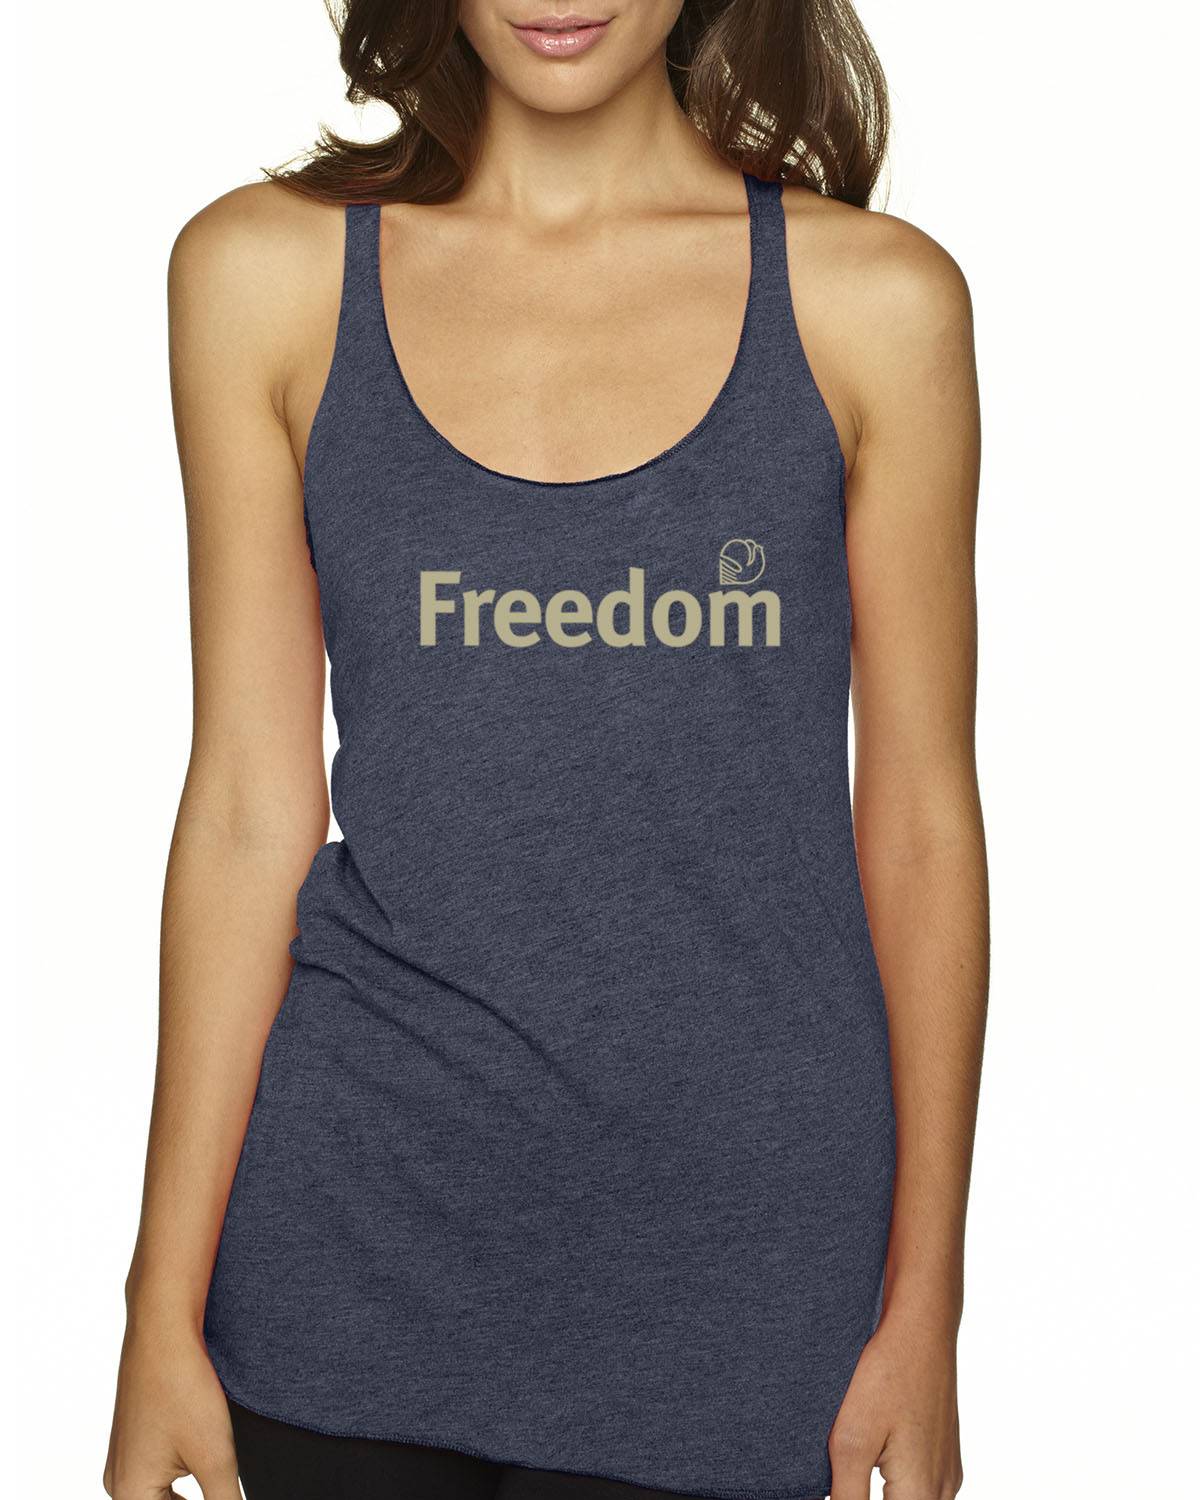 Women's Tri-blend Freedom Tank Top (Indigo)